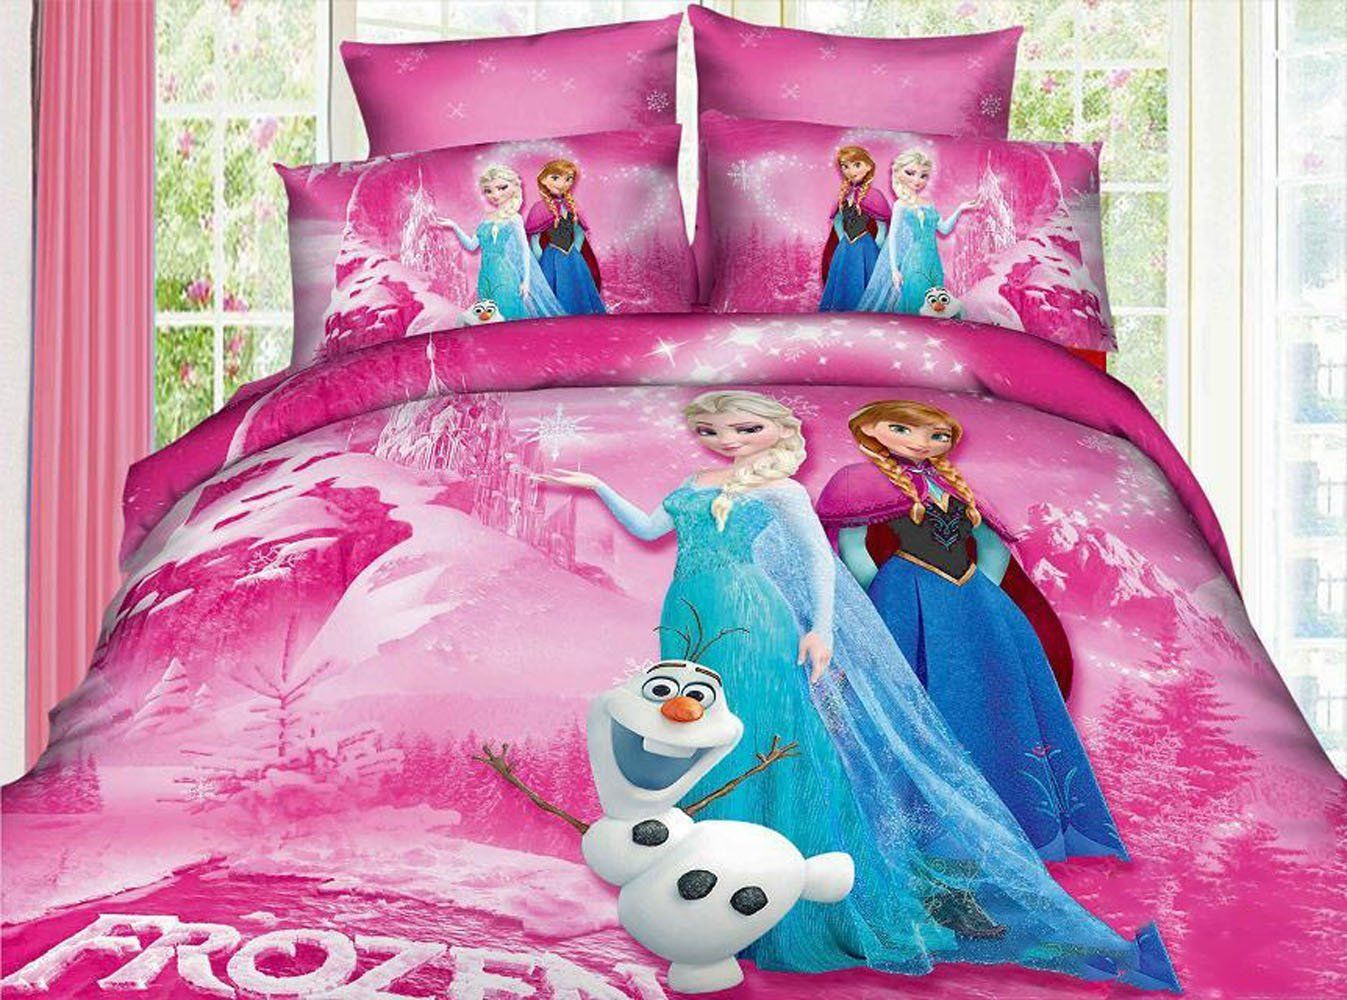 Disney frozen bedroom ideas - Frozen Kids Bedding Sets Elsa Anna Olaf Bed Sets Cotton Cheap Contain Duvet Covers Flat Sheet Pillow Cases Home Textiles